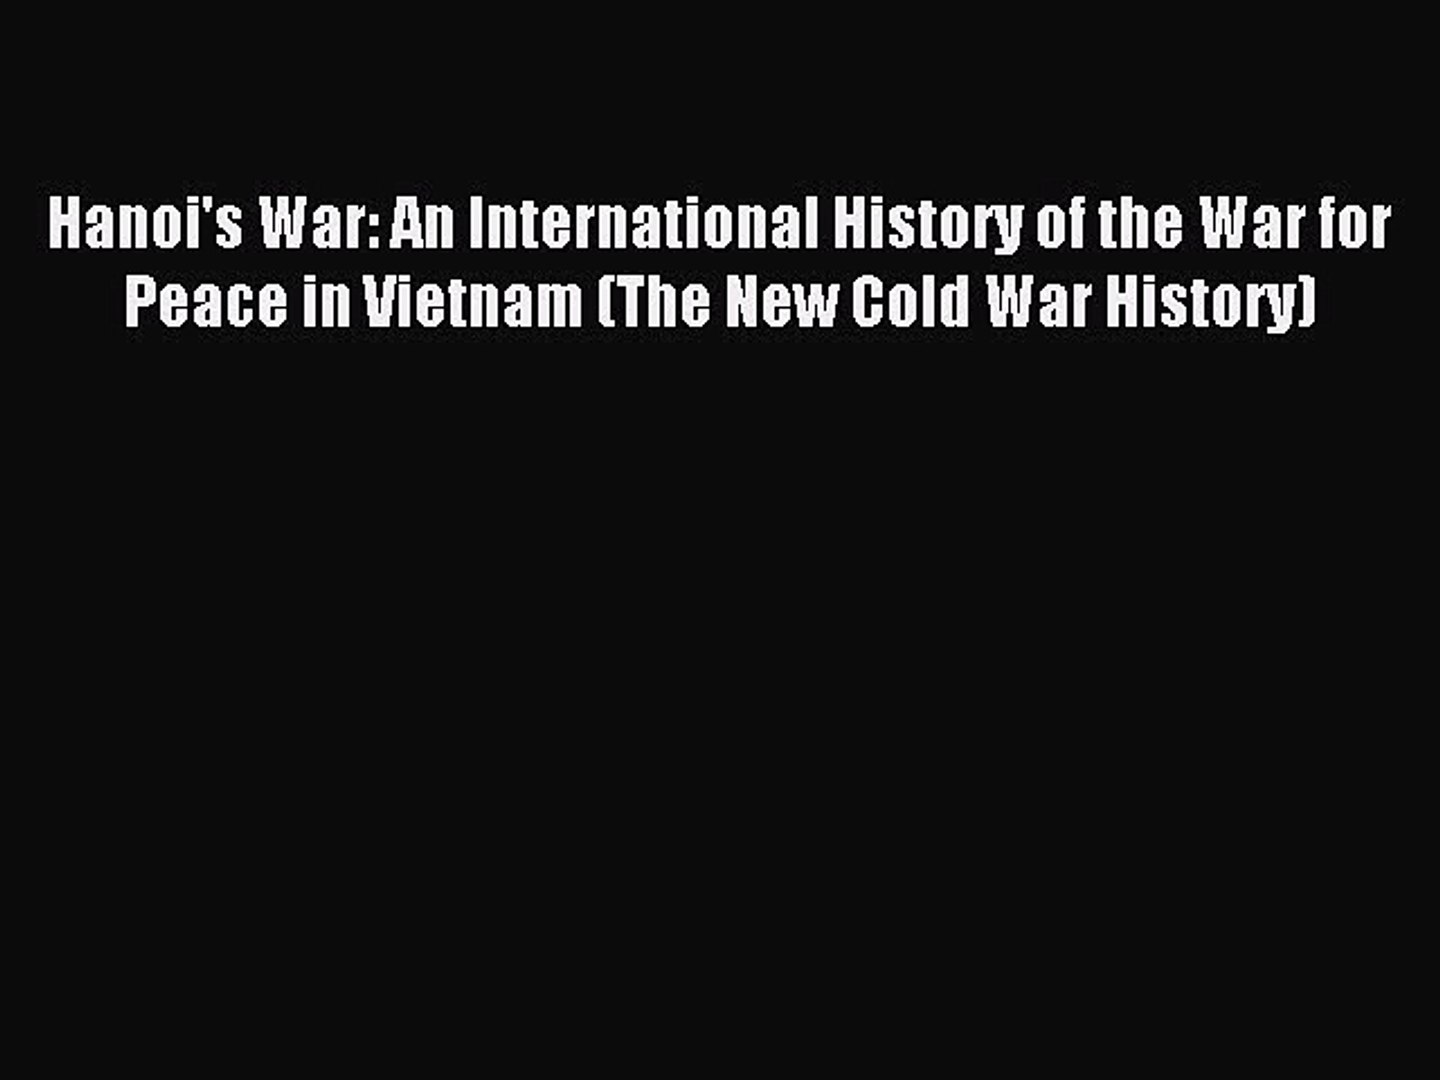 Read Hanoi's War: An International History of the War for Peace in Vietnam (The New Cold War